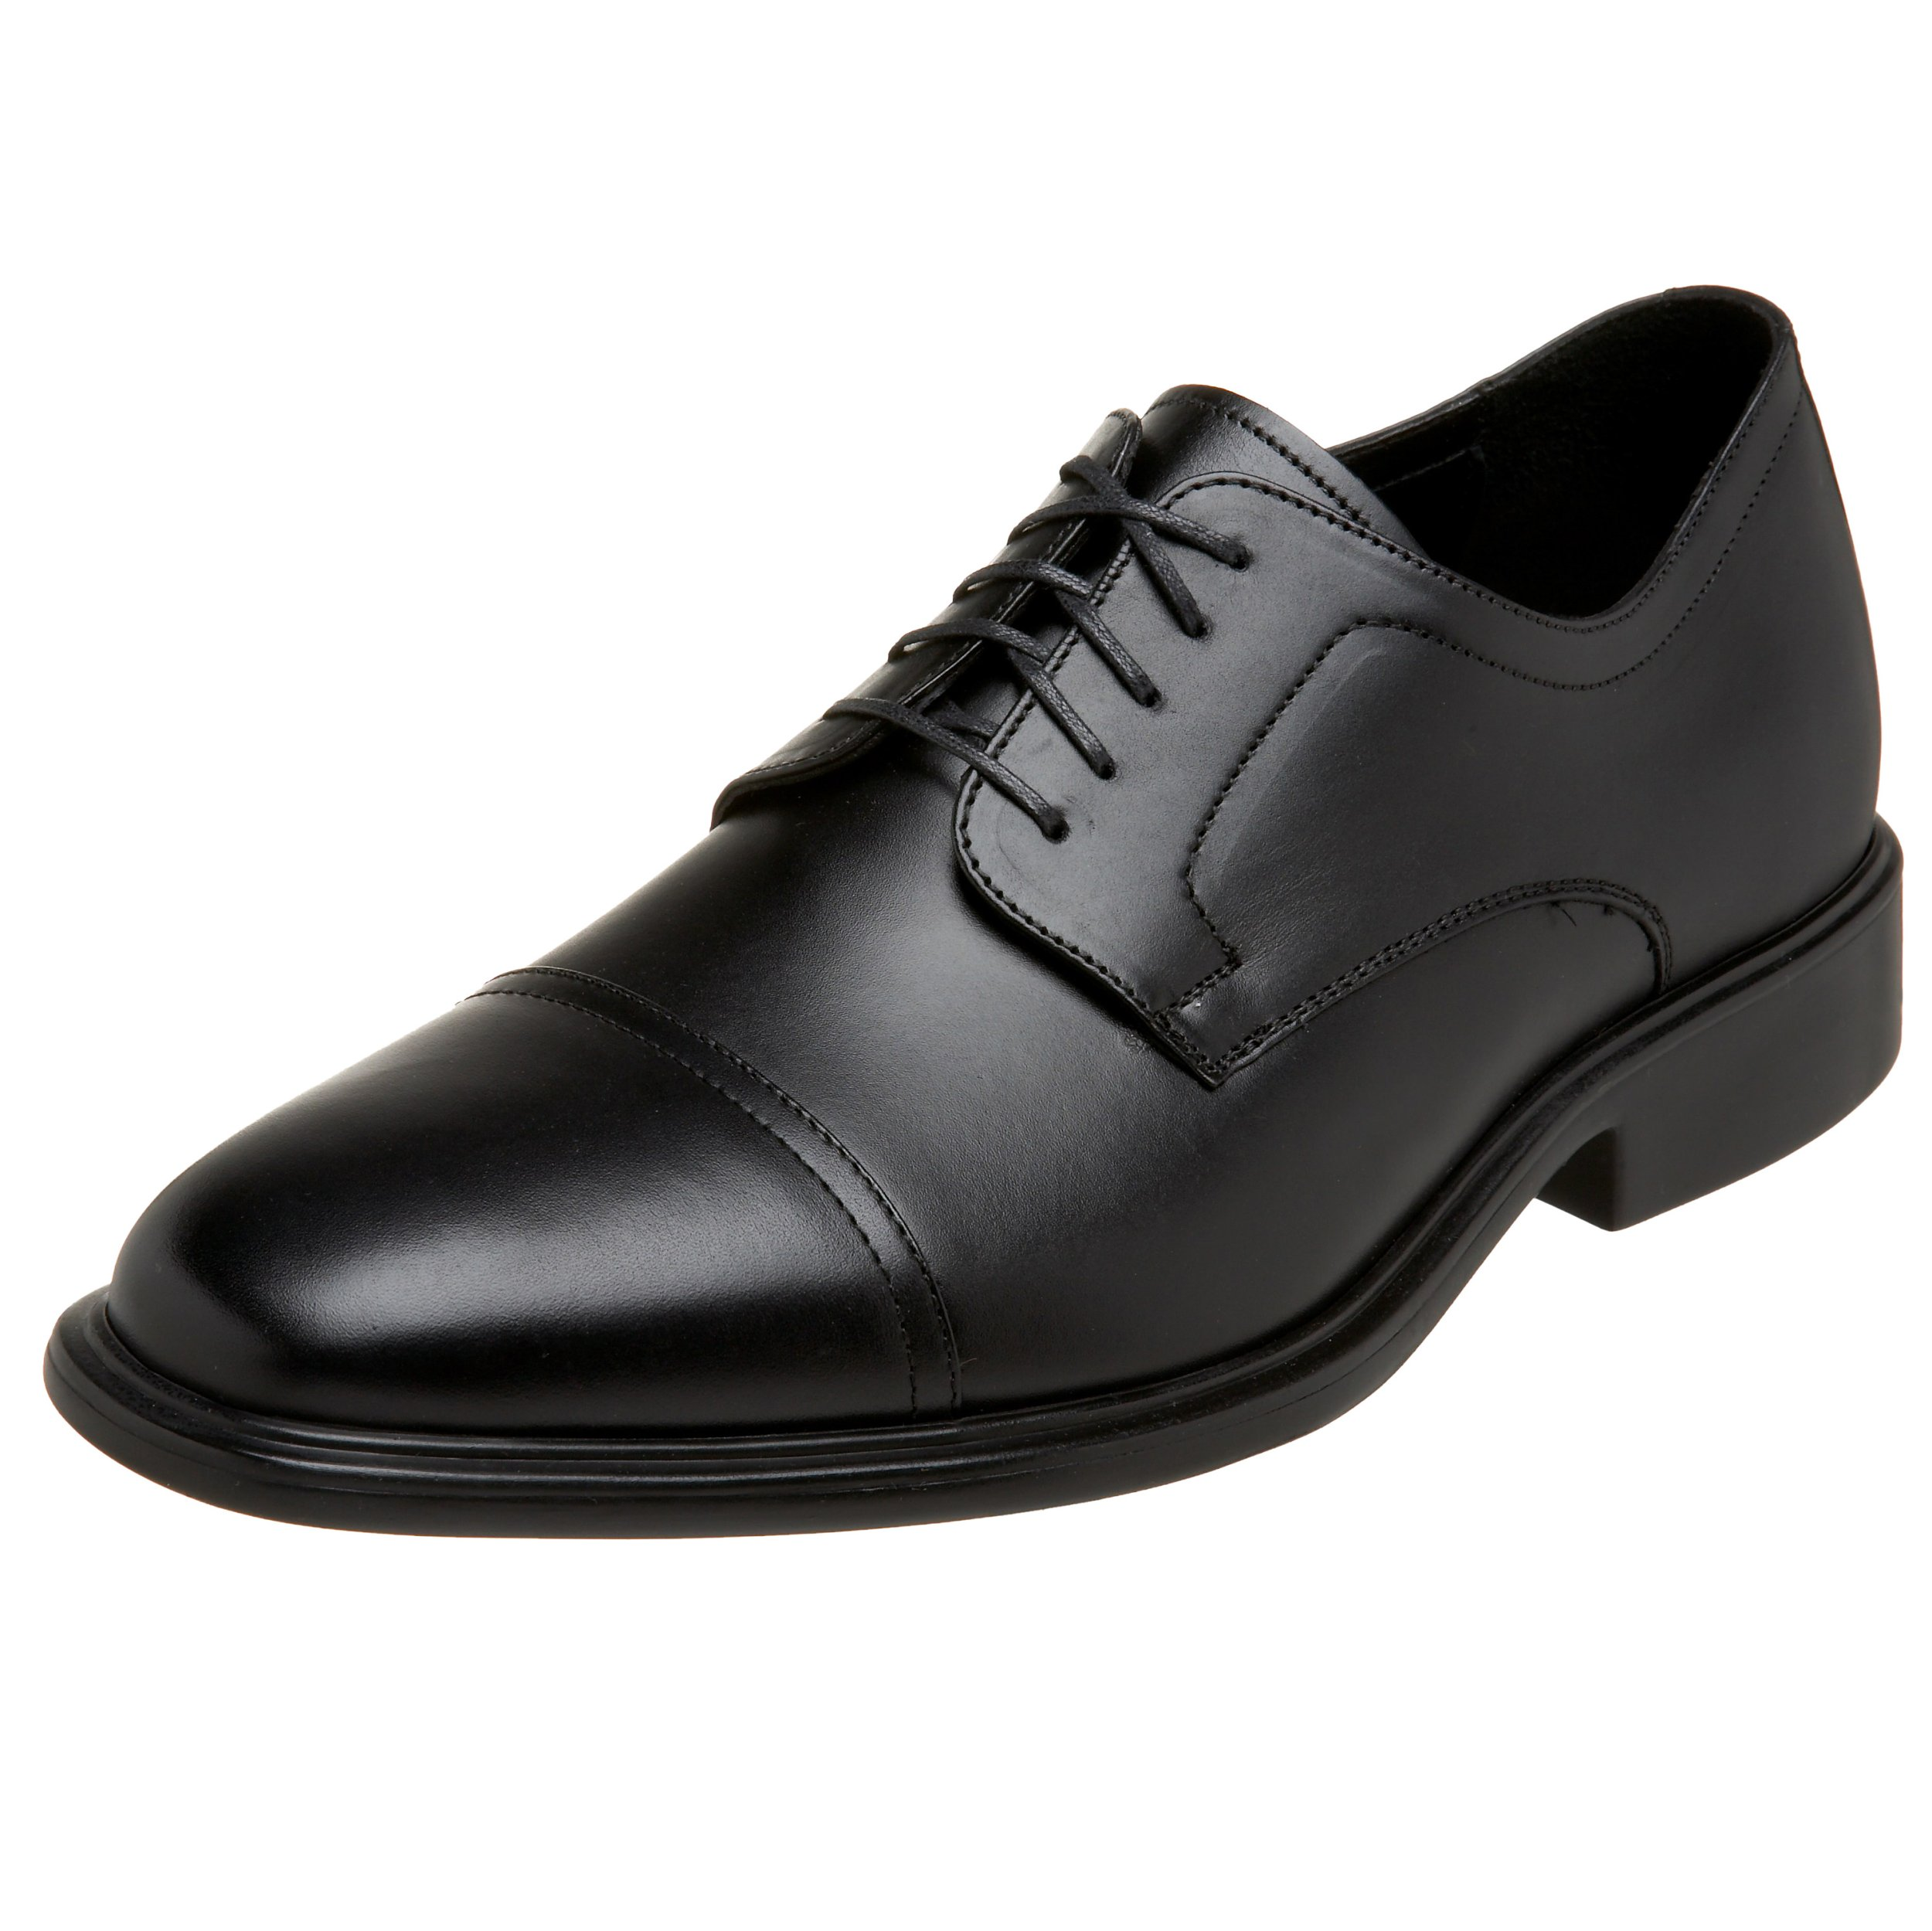 Neil M Men's Senator Cap-Toe Oxford,Black,9 D US